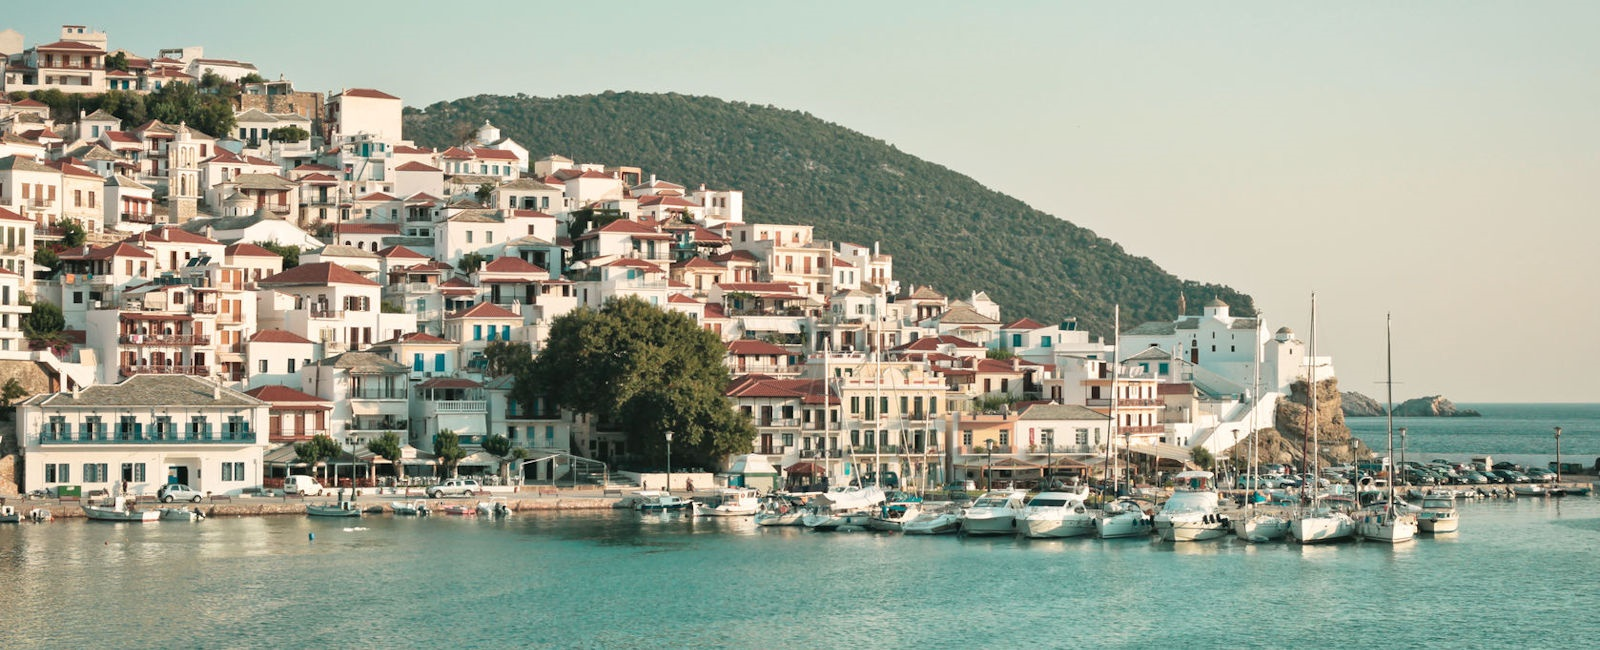 skopelos town, greece